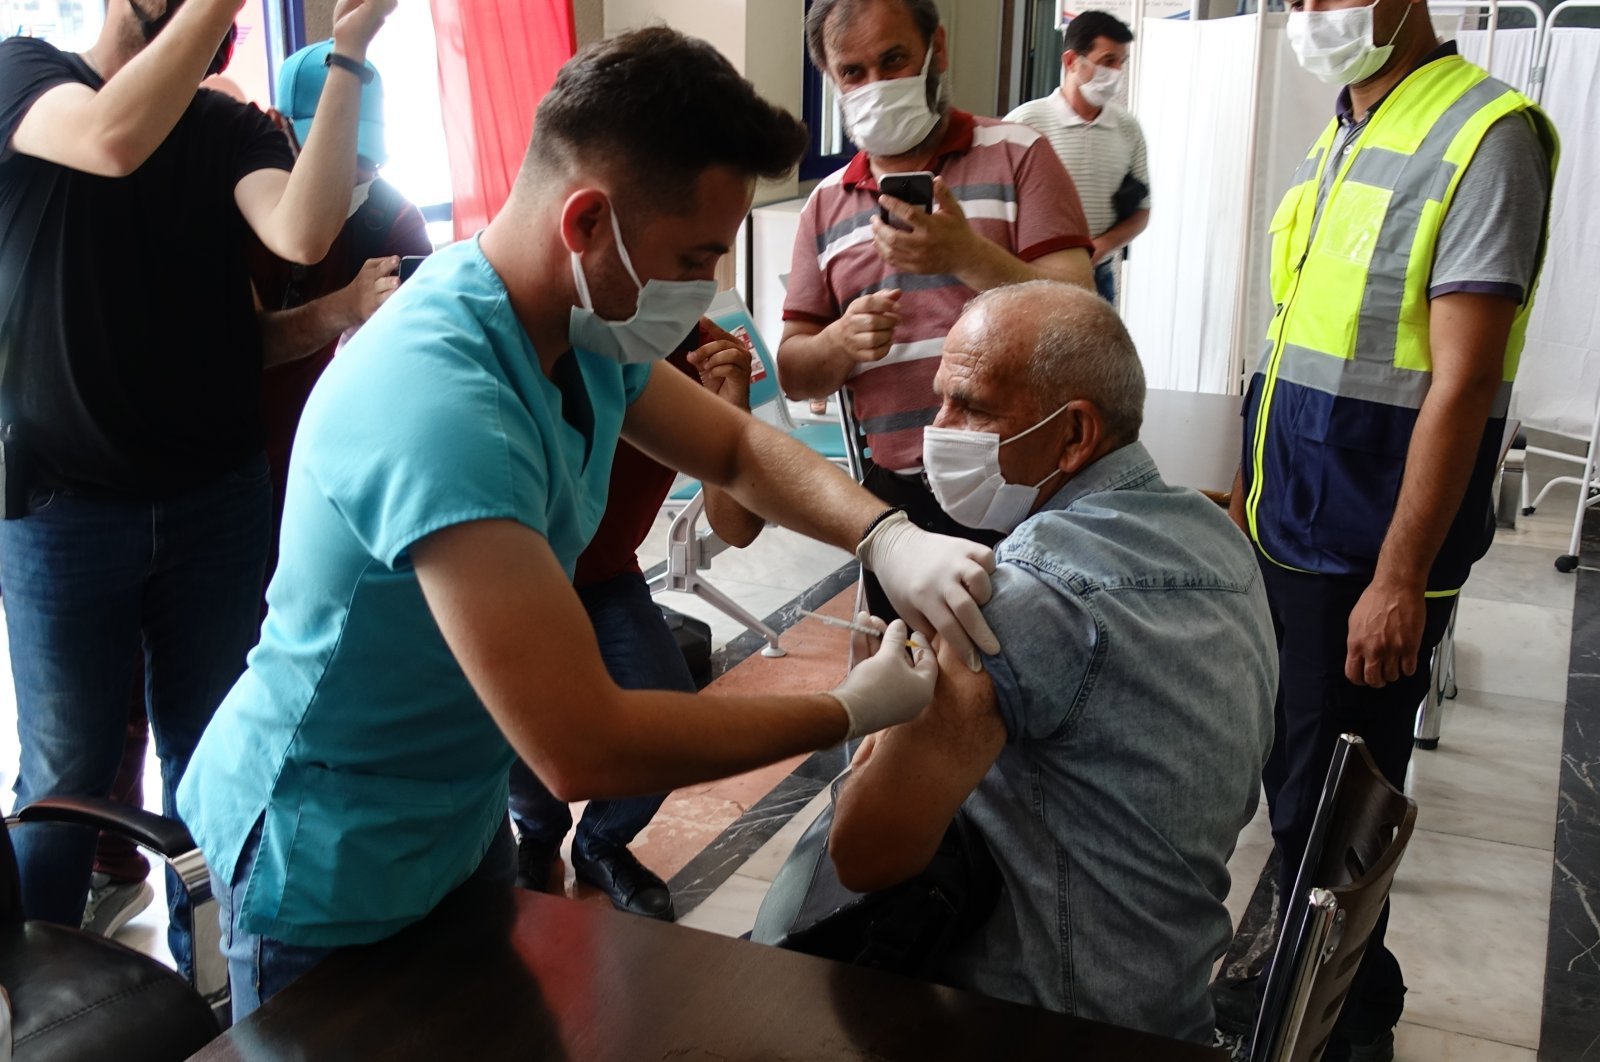 A man gets vaccinated at a vaccination spot at a train station in Konya, central Turkey, July 2, 2021. (AA PHOTO)